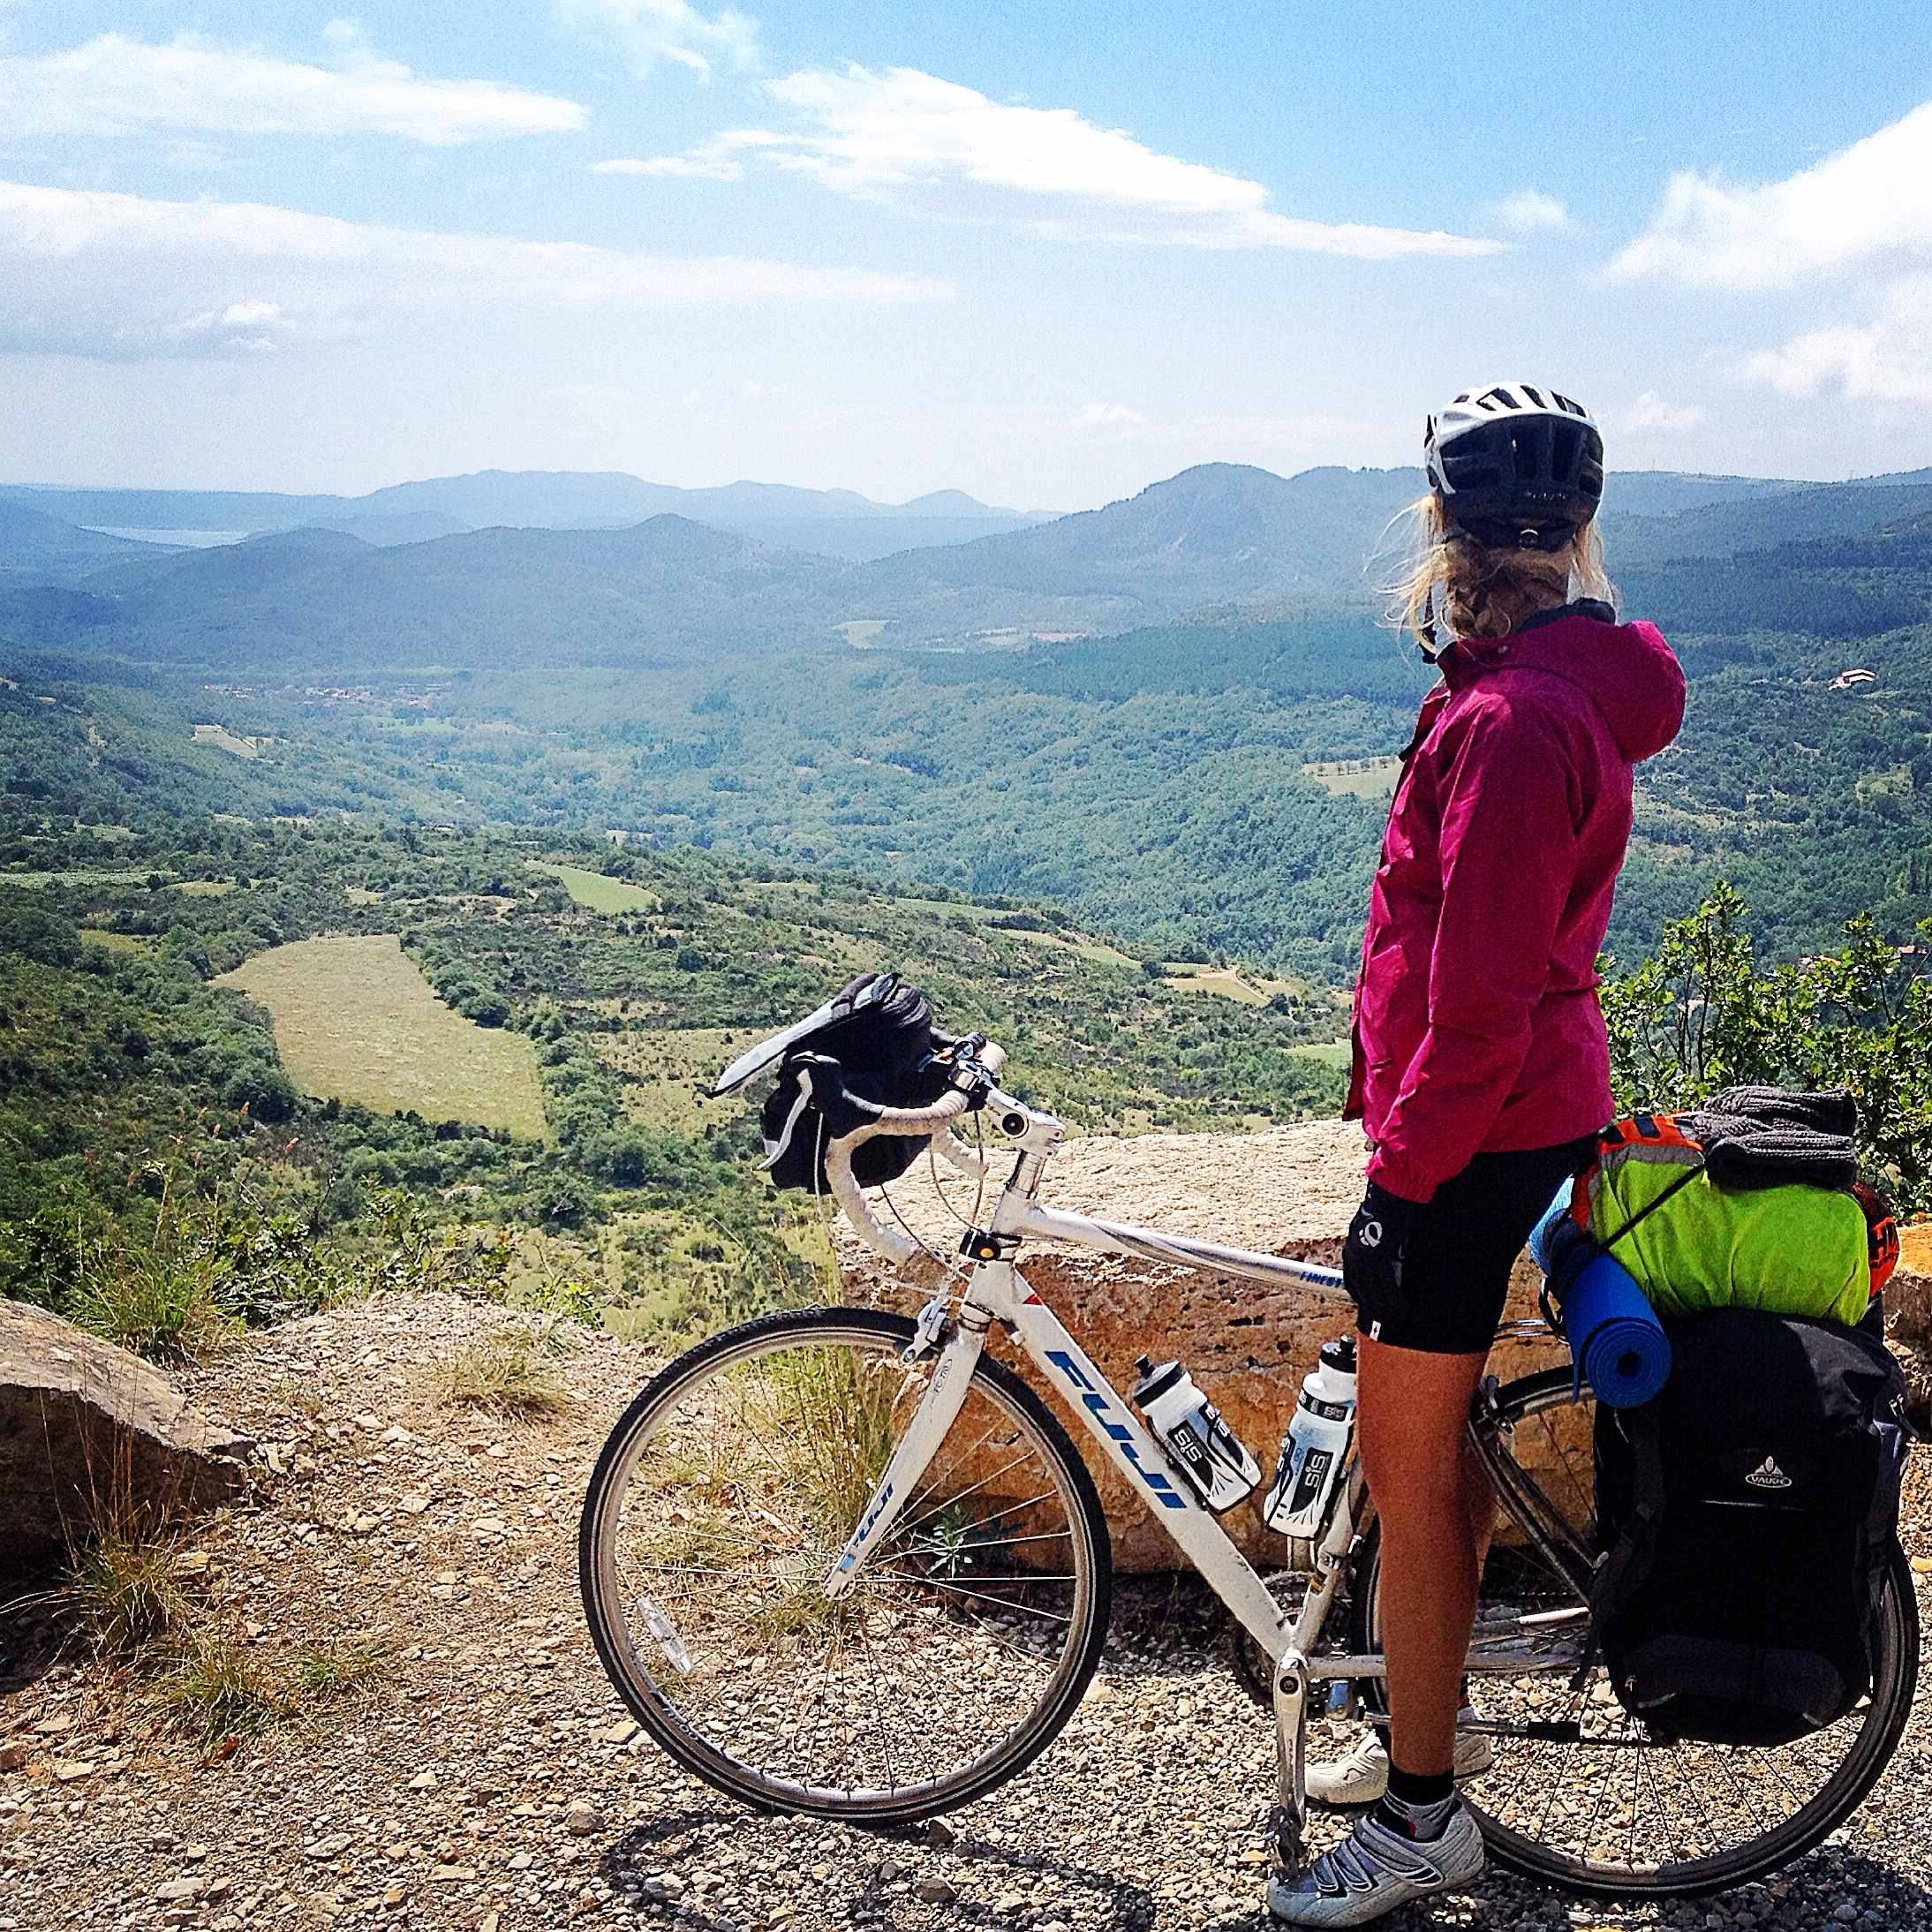 atlantic coast to mediterranean coast – a beginners bicycle tour of